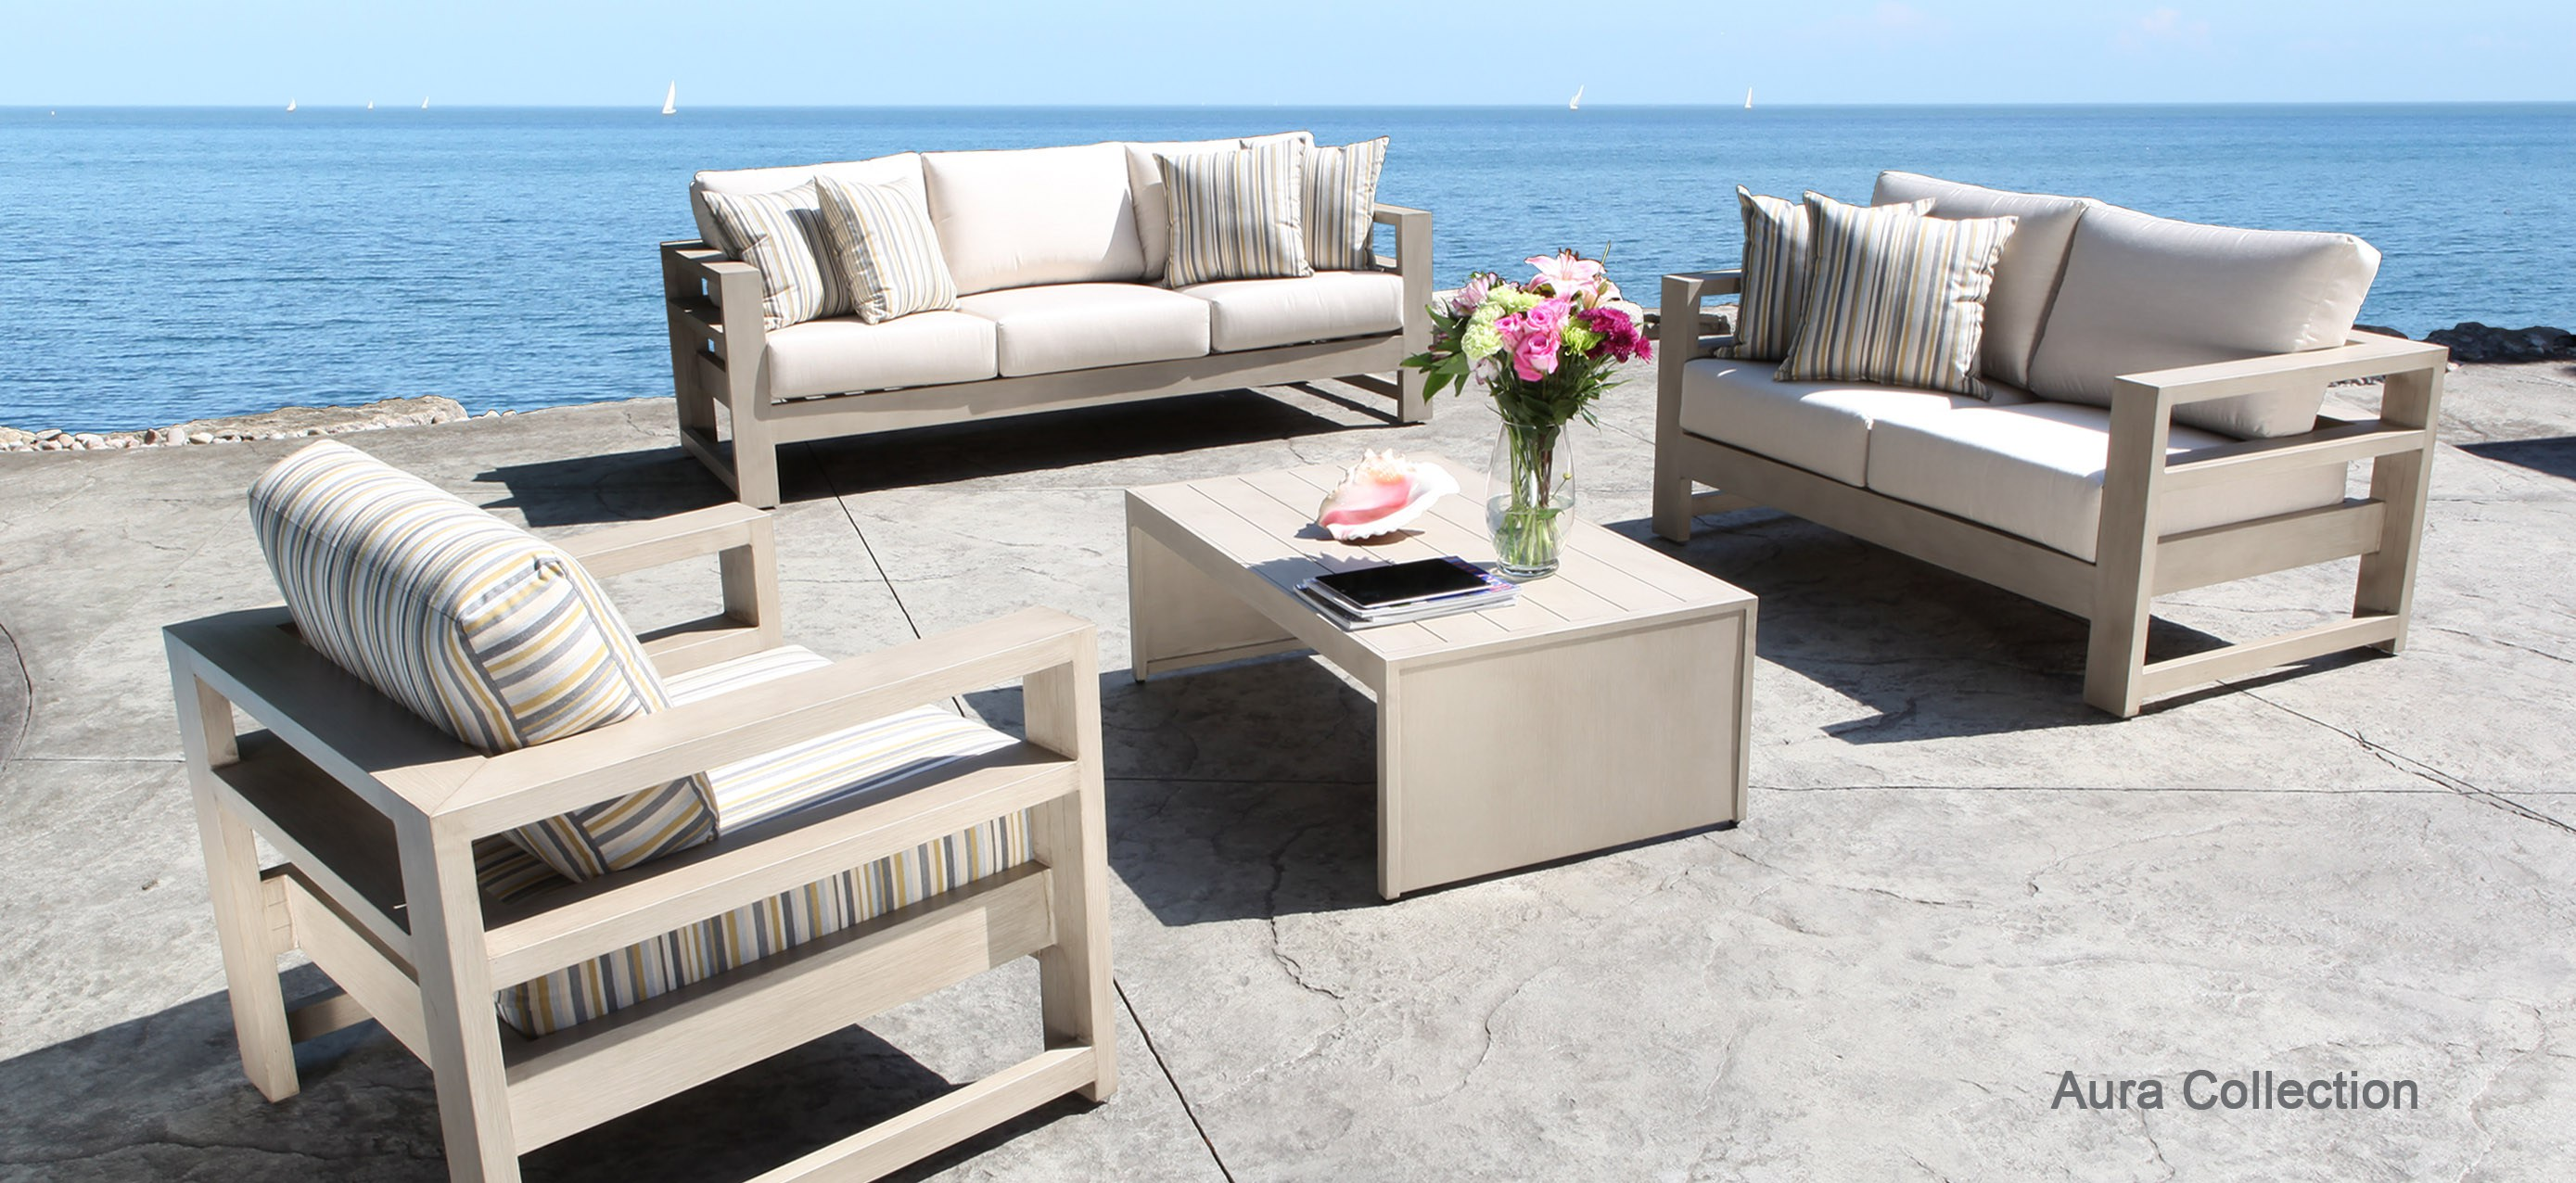 Overstock Outdoor Furniture | Overstock Clarksville In | Ashley Furniture Overstock